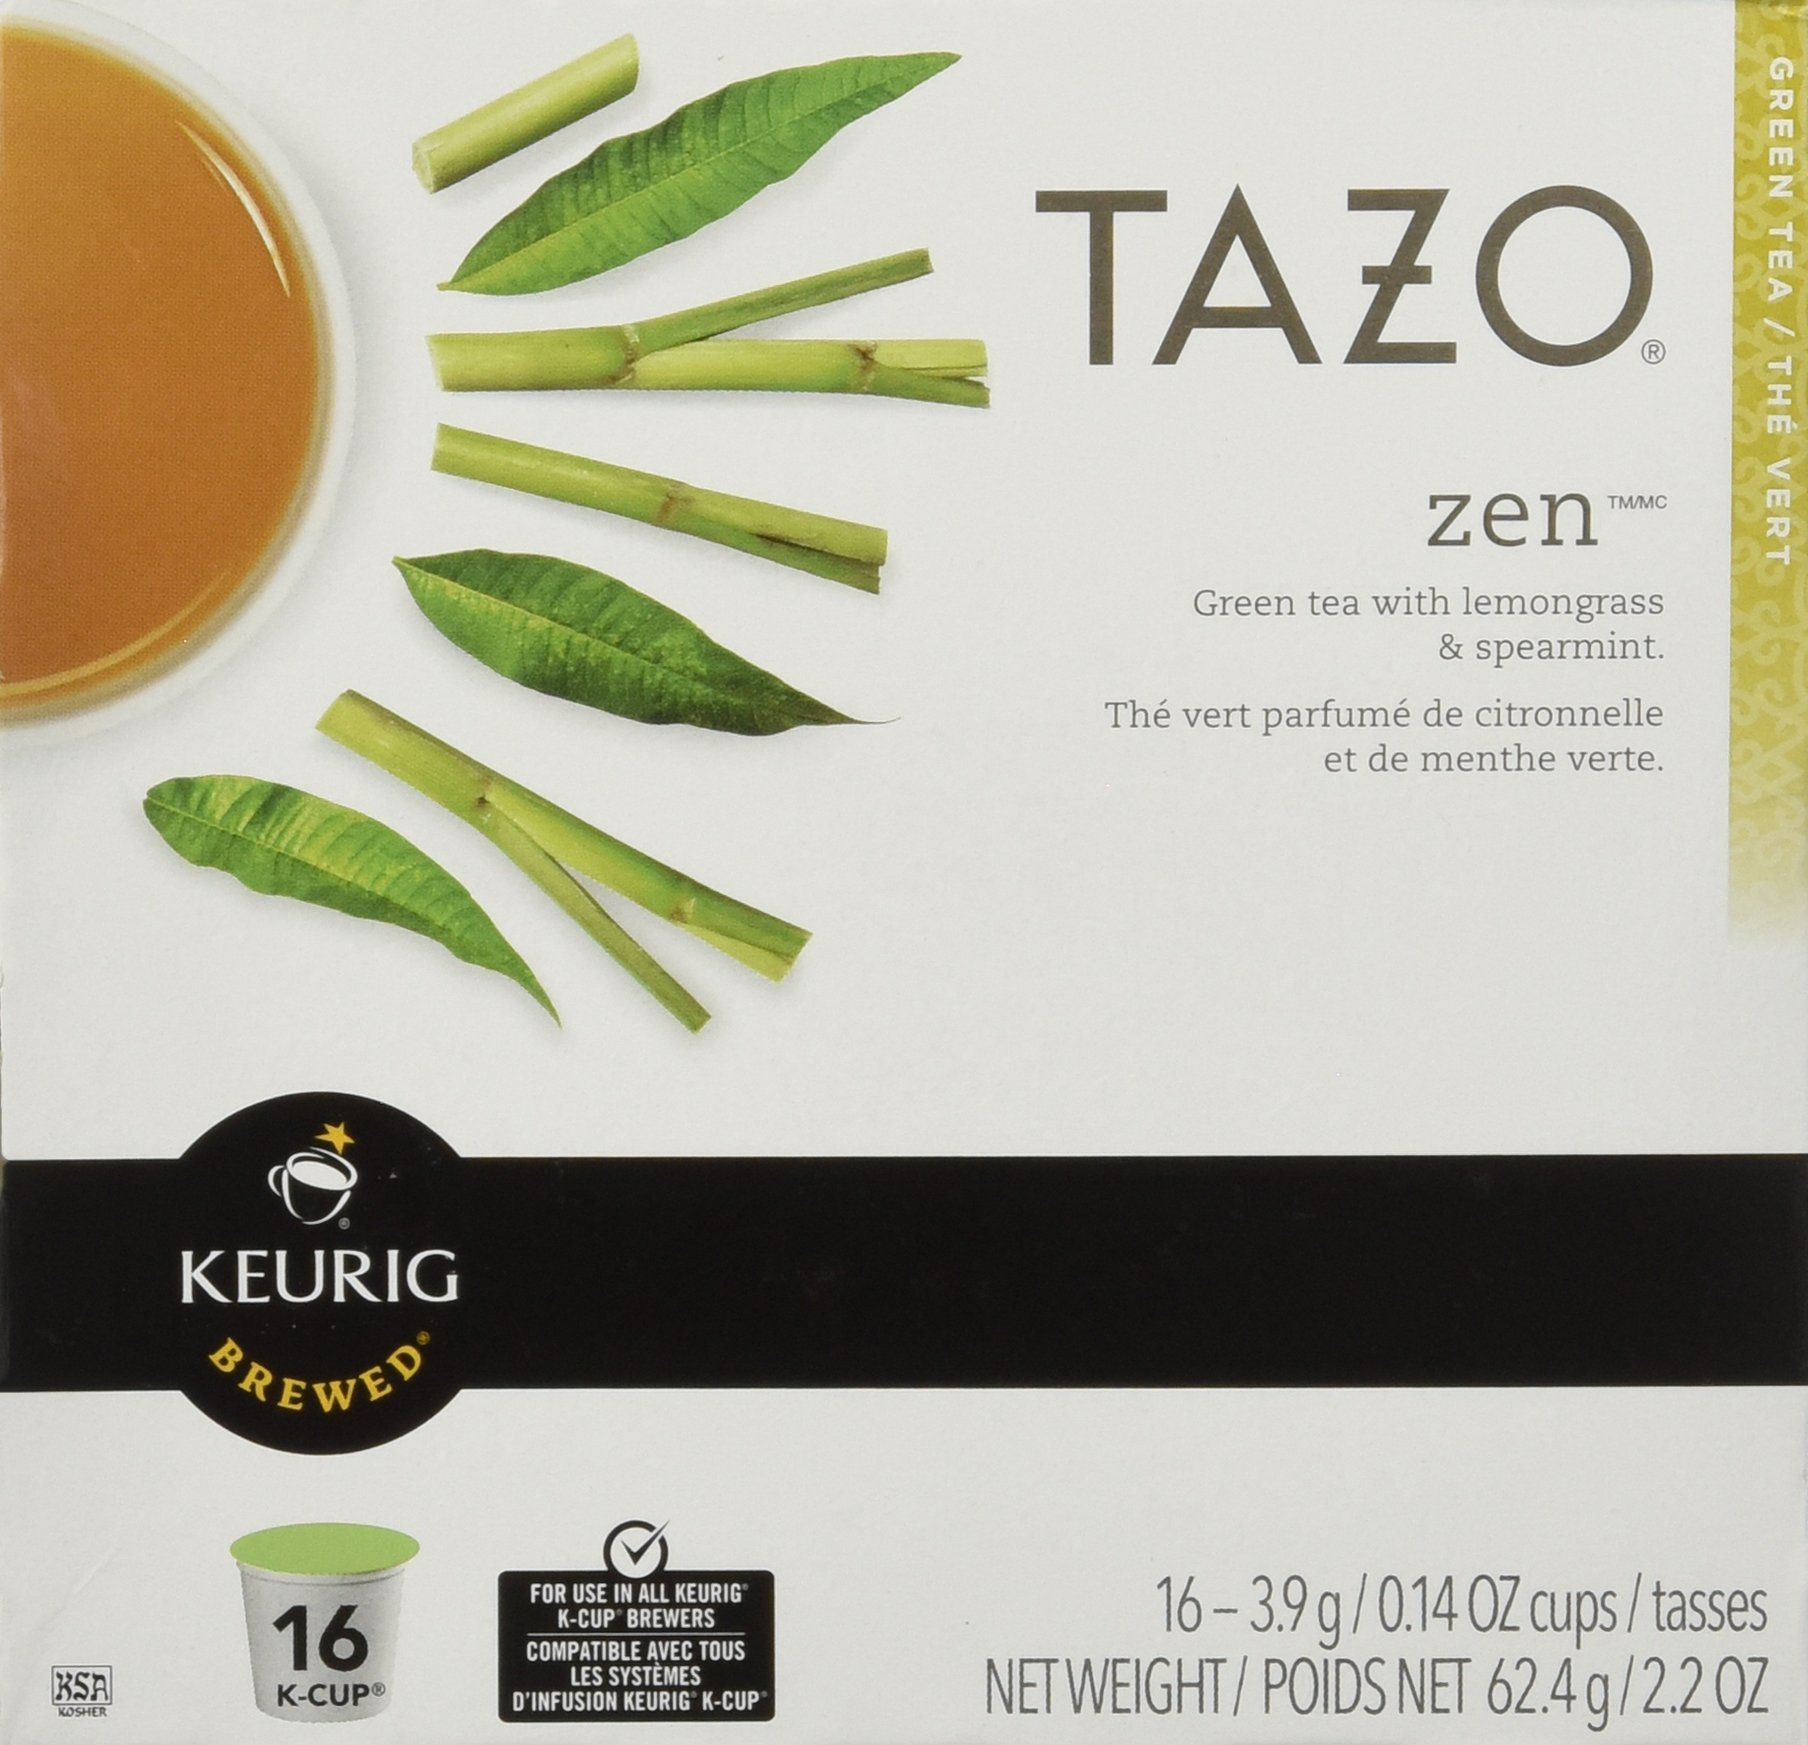 Keurig Tazo Zen Tea 16-Count K-Cups for Keurig Brewers (2 Pack, 32 cups) by TAZO